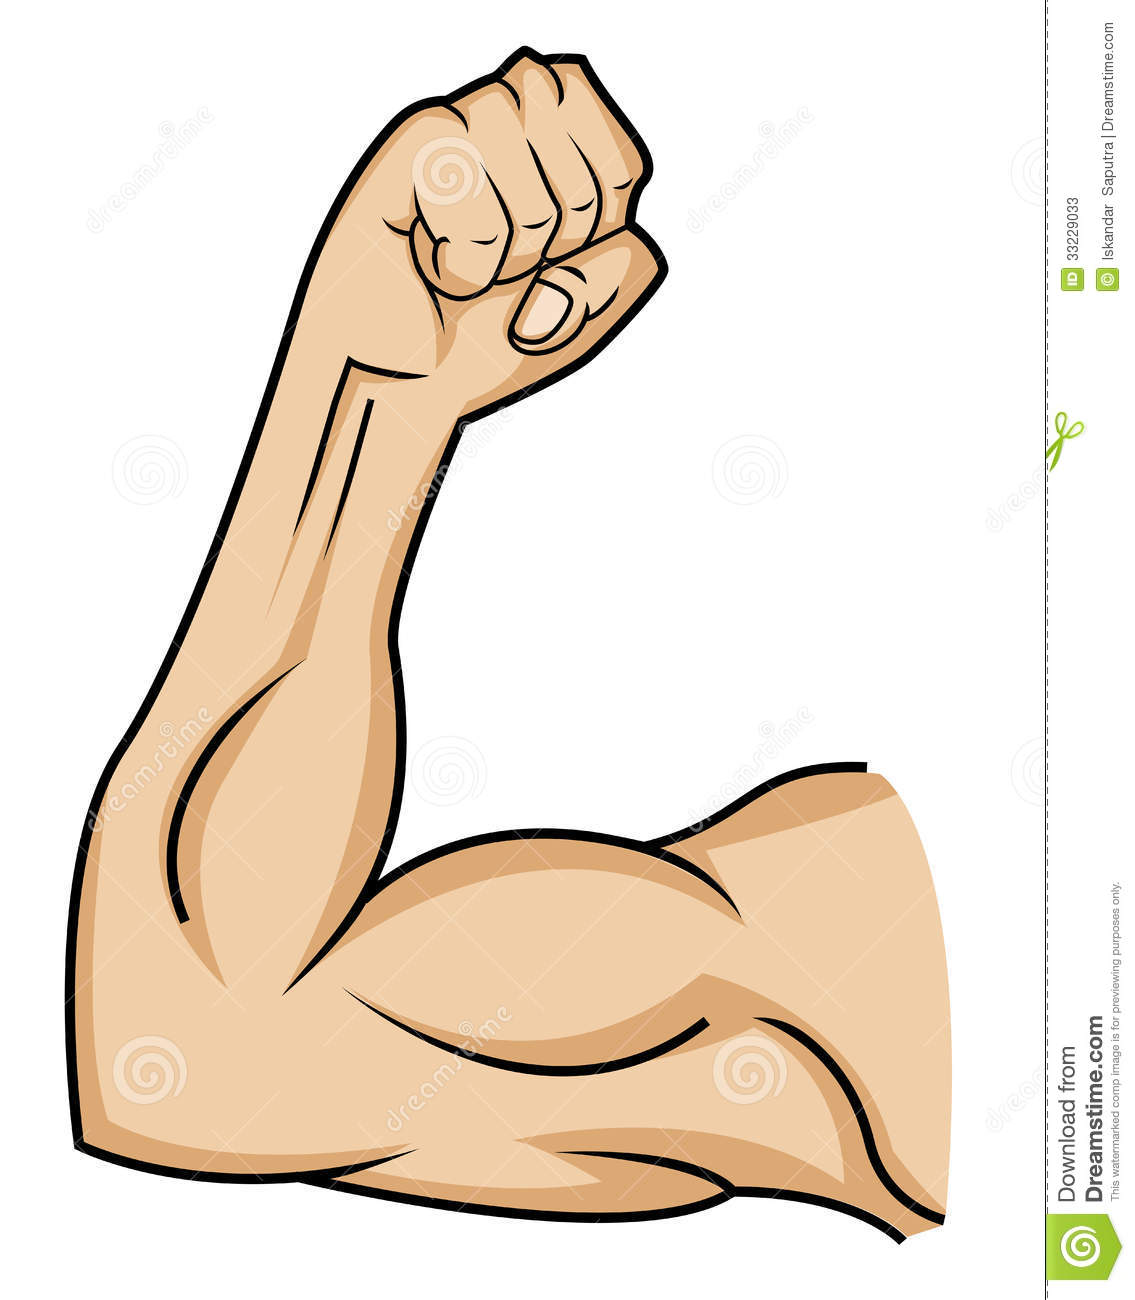 image royalty free Muscle cartoon free download. Arms clipart caricature.